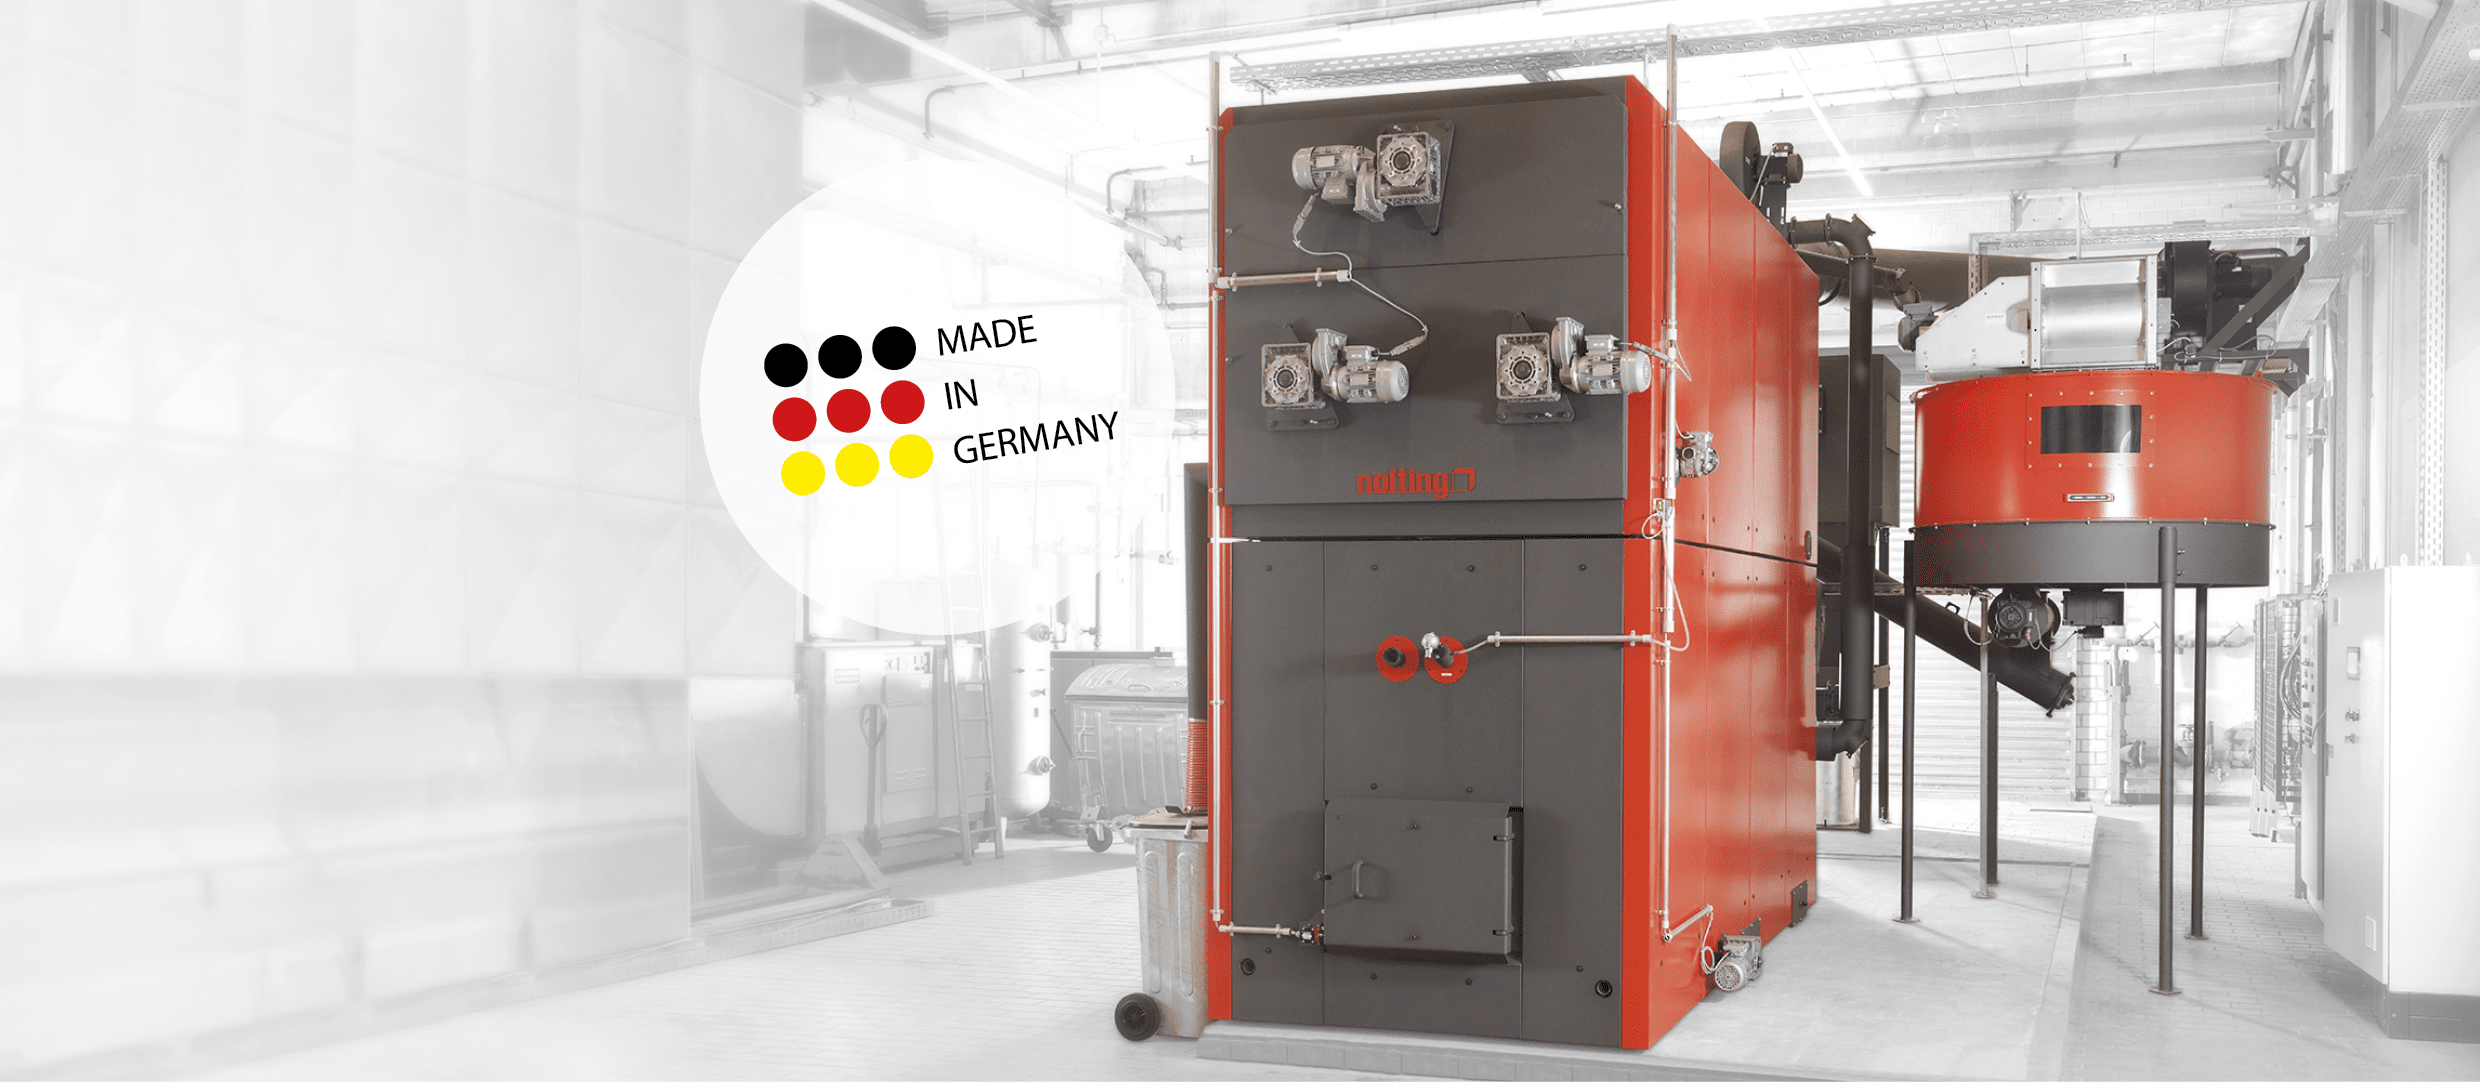 Nolting wood firing technology innovative for over 75 years